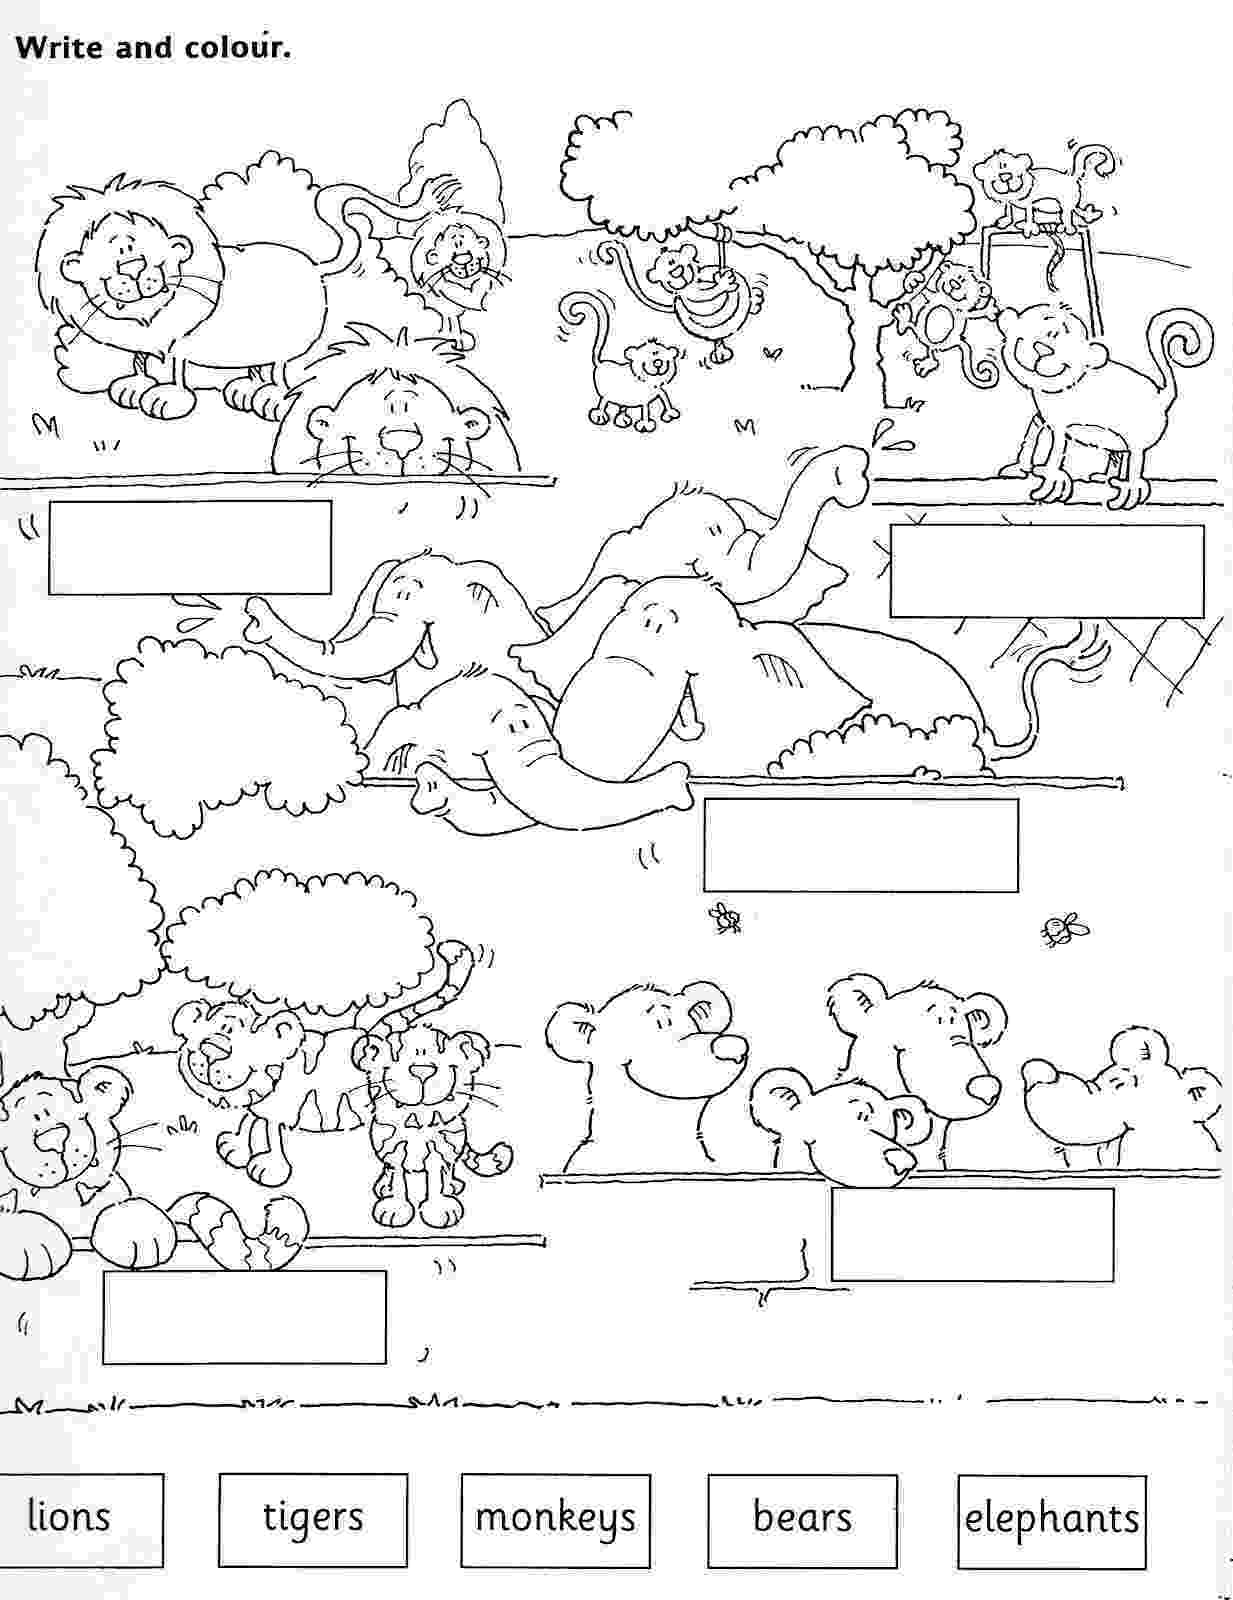 animals coloring worksheets for kindergarten new 826 zoo animals worksheets printable zoo worksheet animals worksheets for coloring kindergarten